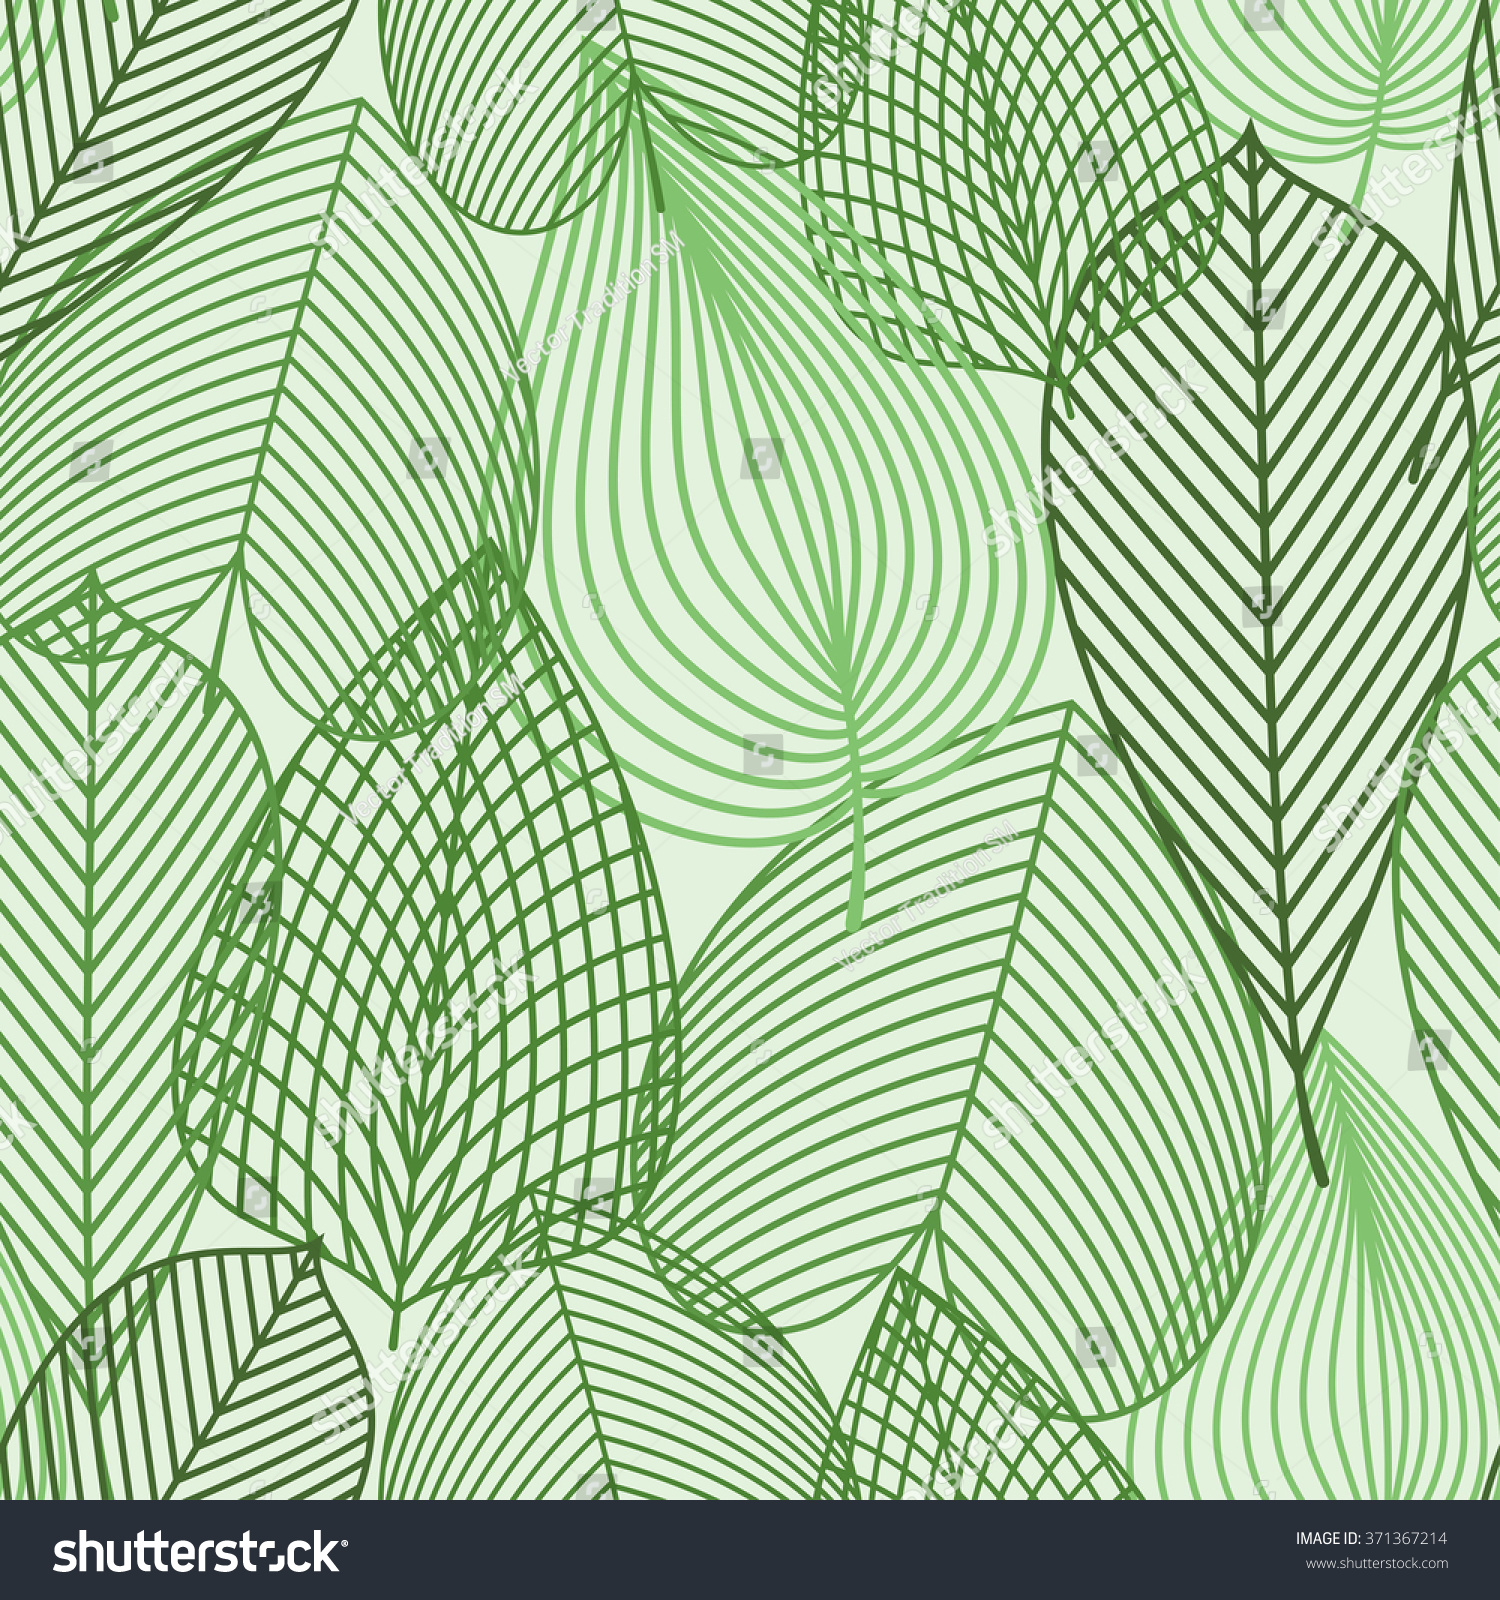 Outline Silhouettes Of Spring Green Leaves Seamless Pattern For Nature Background Or Wallpaper Design